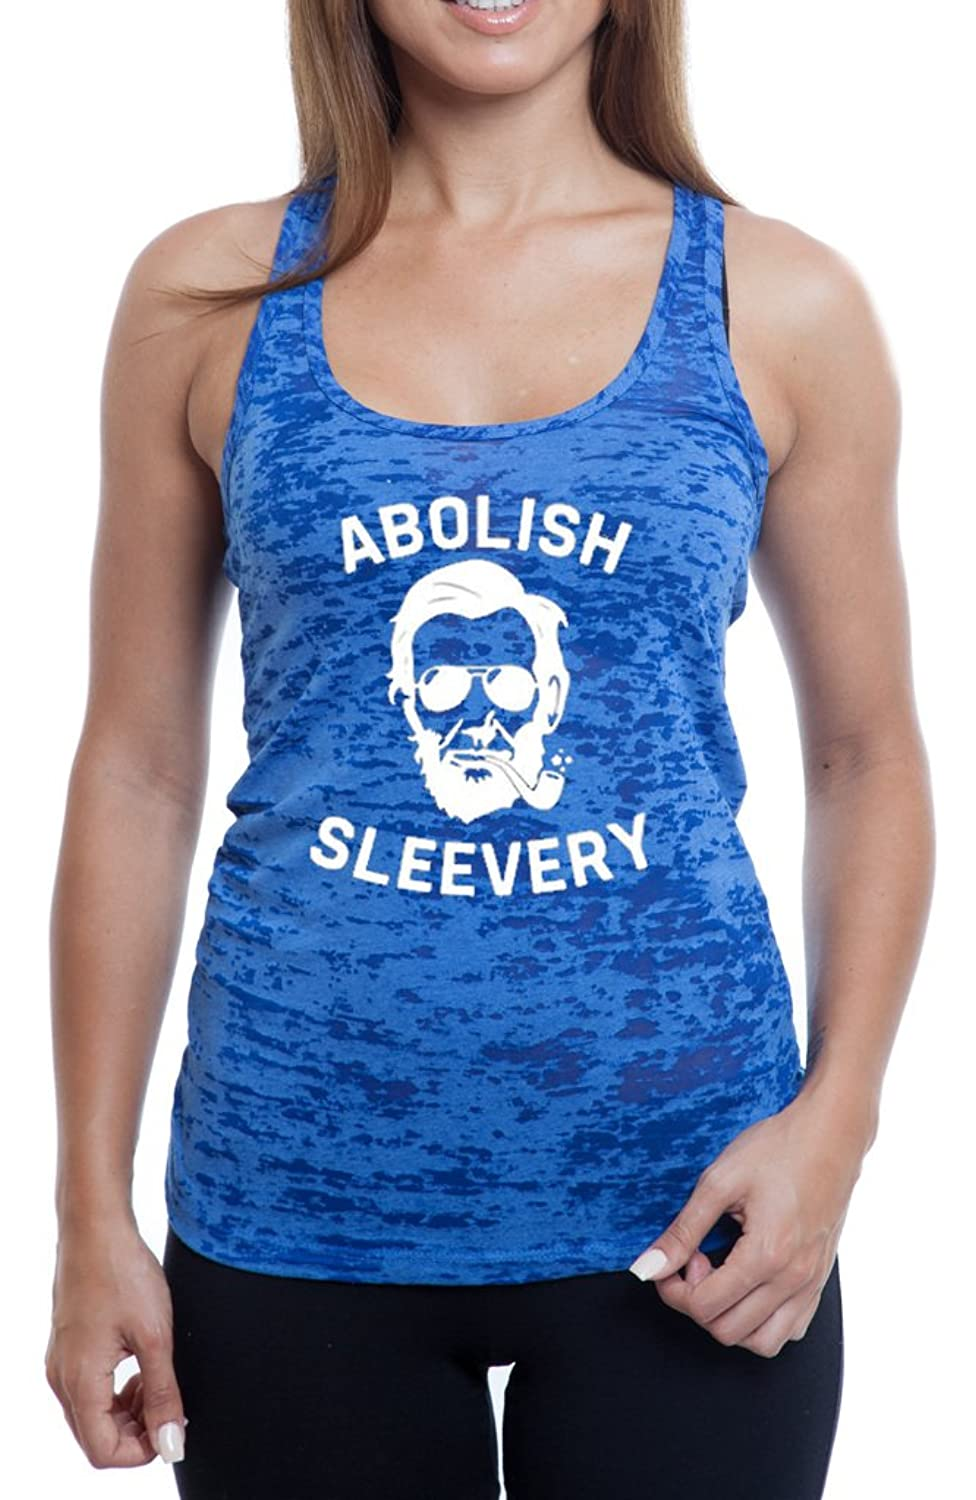 Women's Abe Lincoln Abolished Sleevery Burnout TankTop